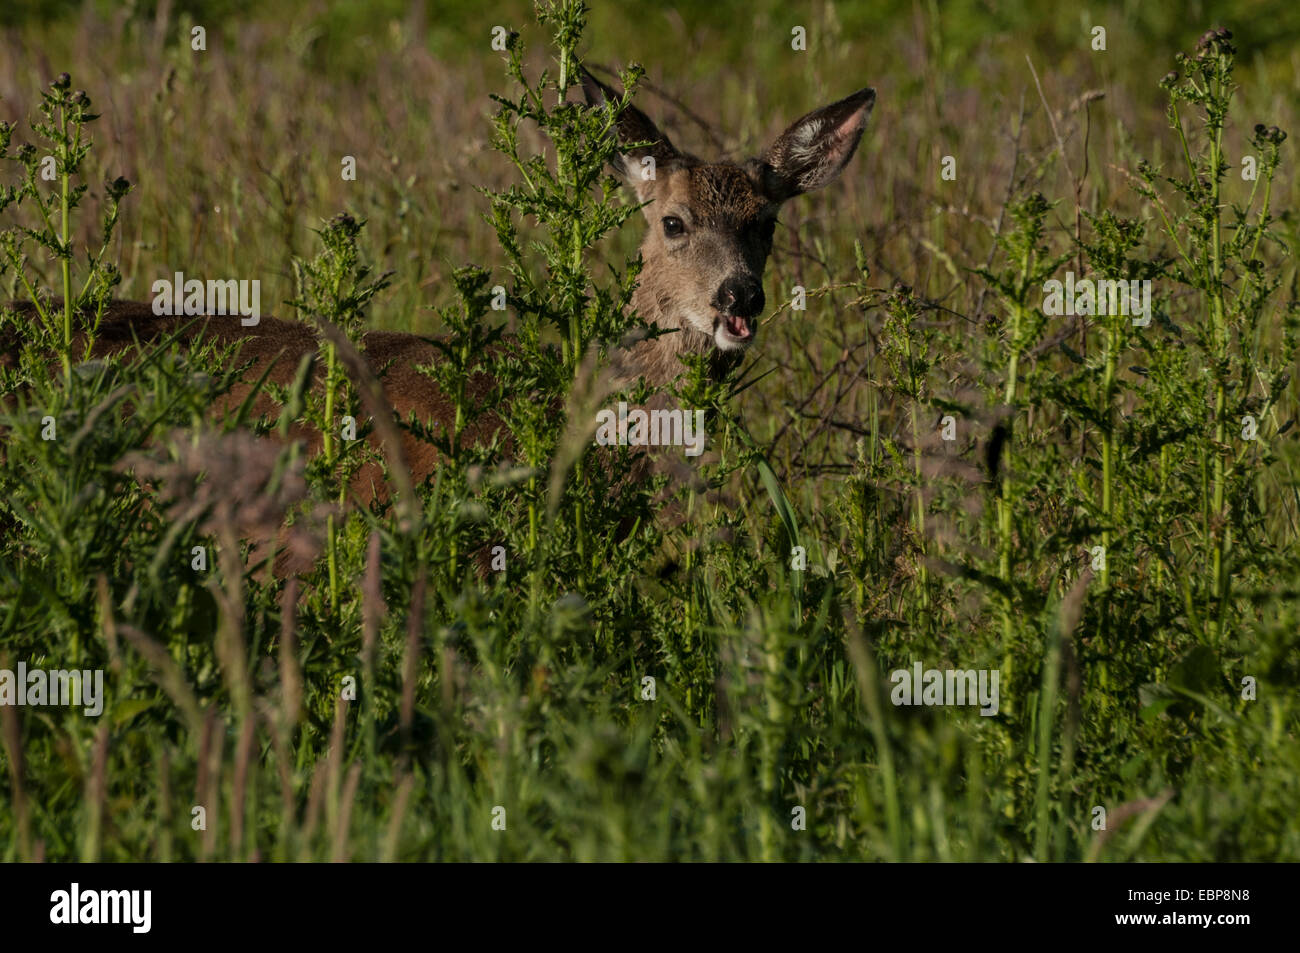 A young male Roosevelt Elk (Cervus canadensis) Prairie Creek Redwoods State Park, Northern California Coast. - Stock Image